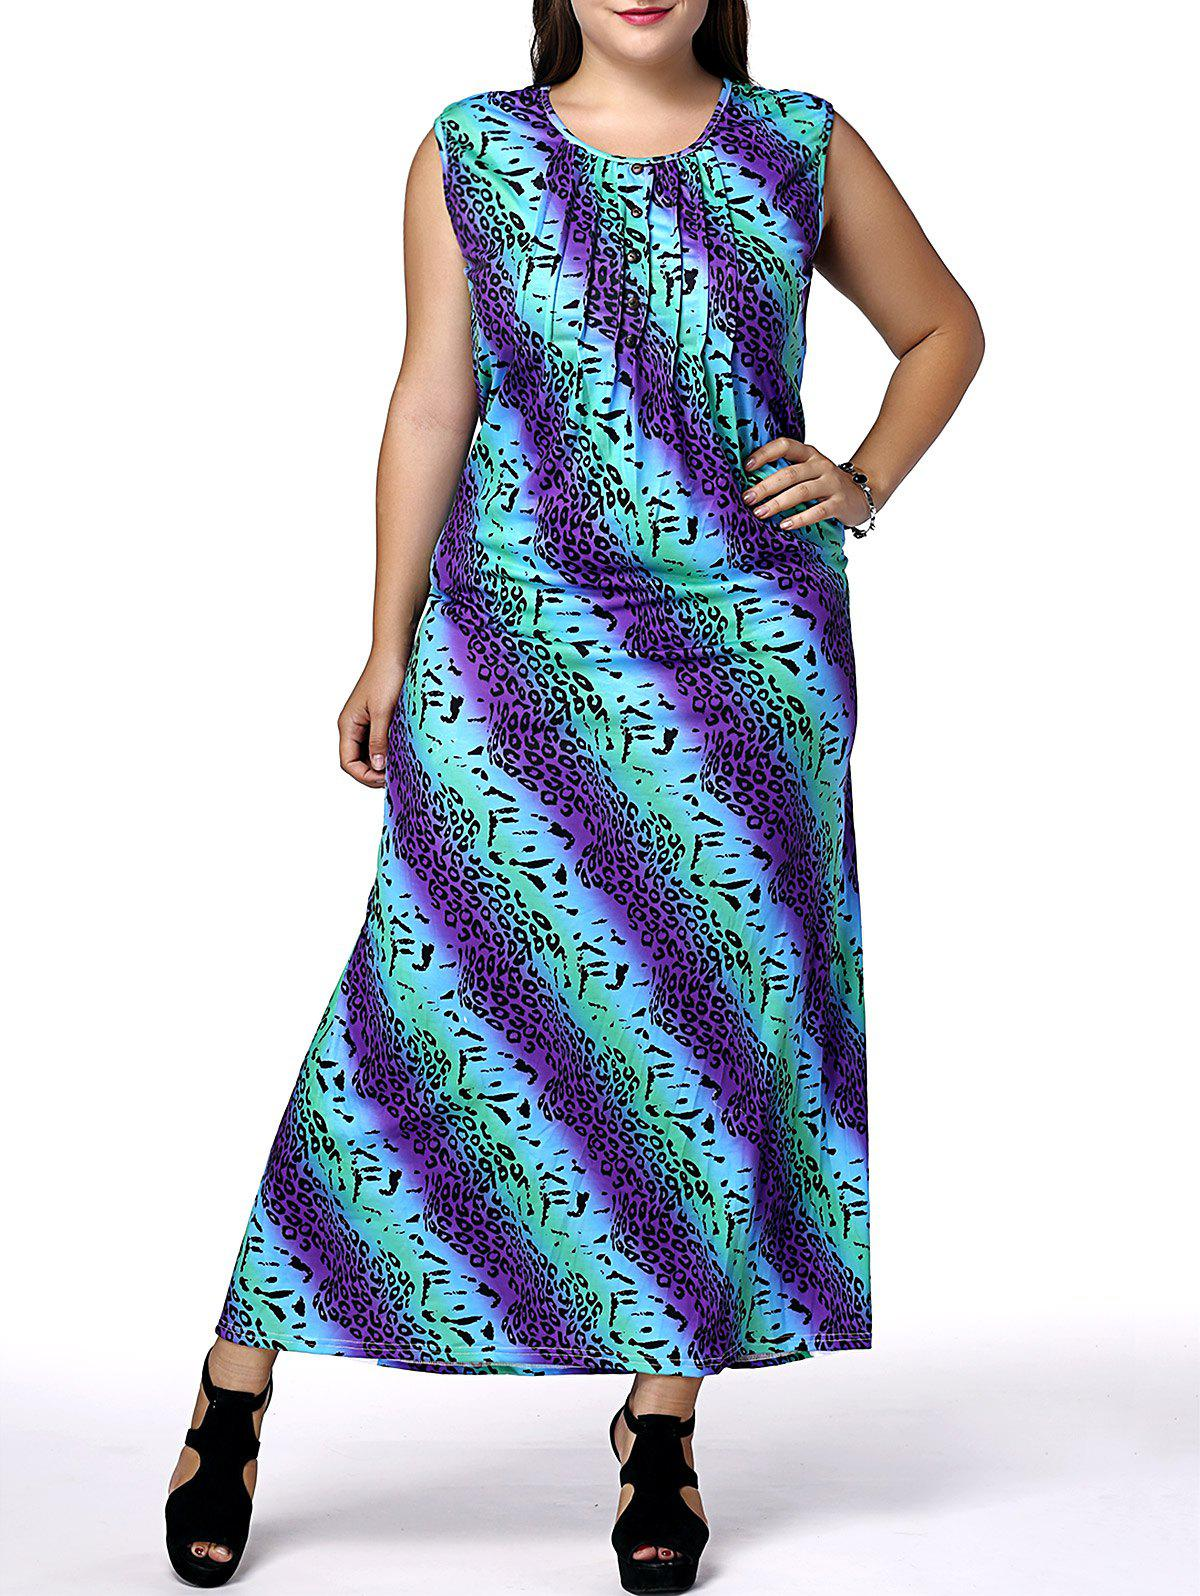 Casual Sleeveless Scoop Neck African Print Plus Size Women's Dress - COLORMIX 2XL